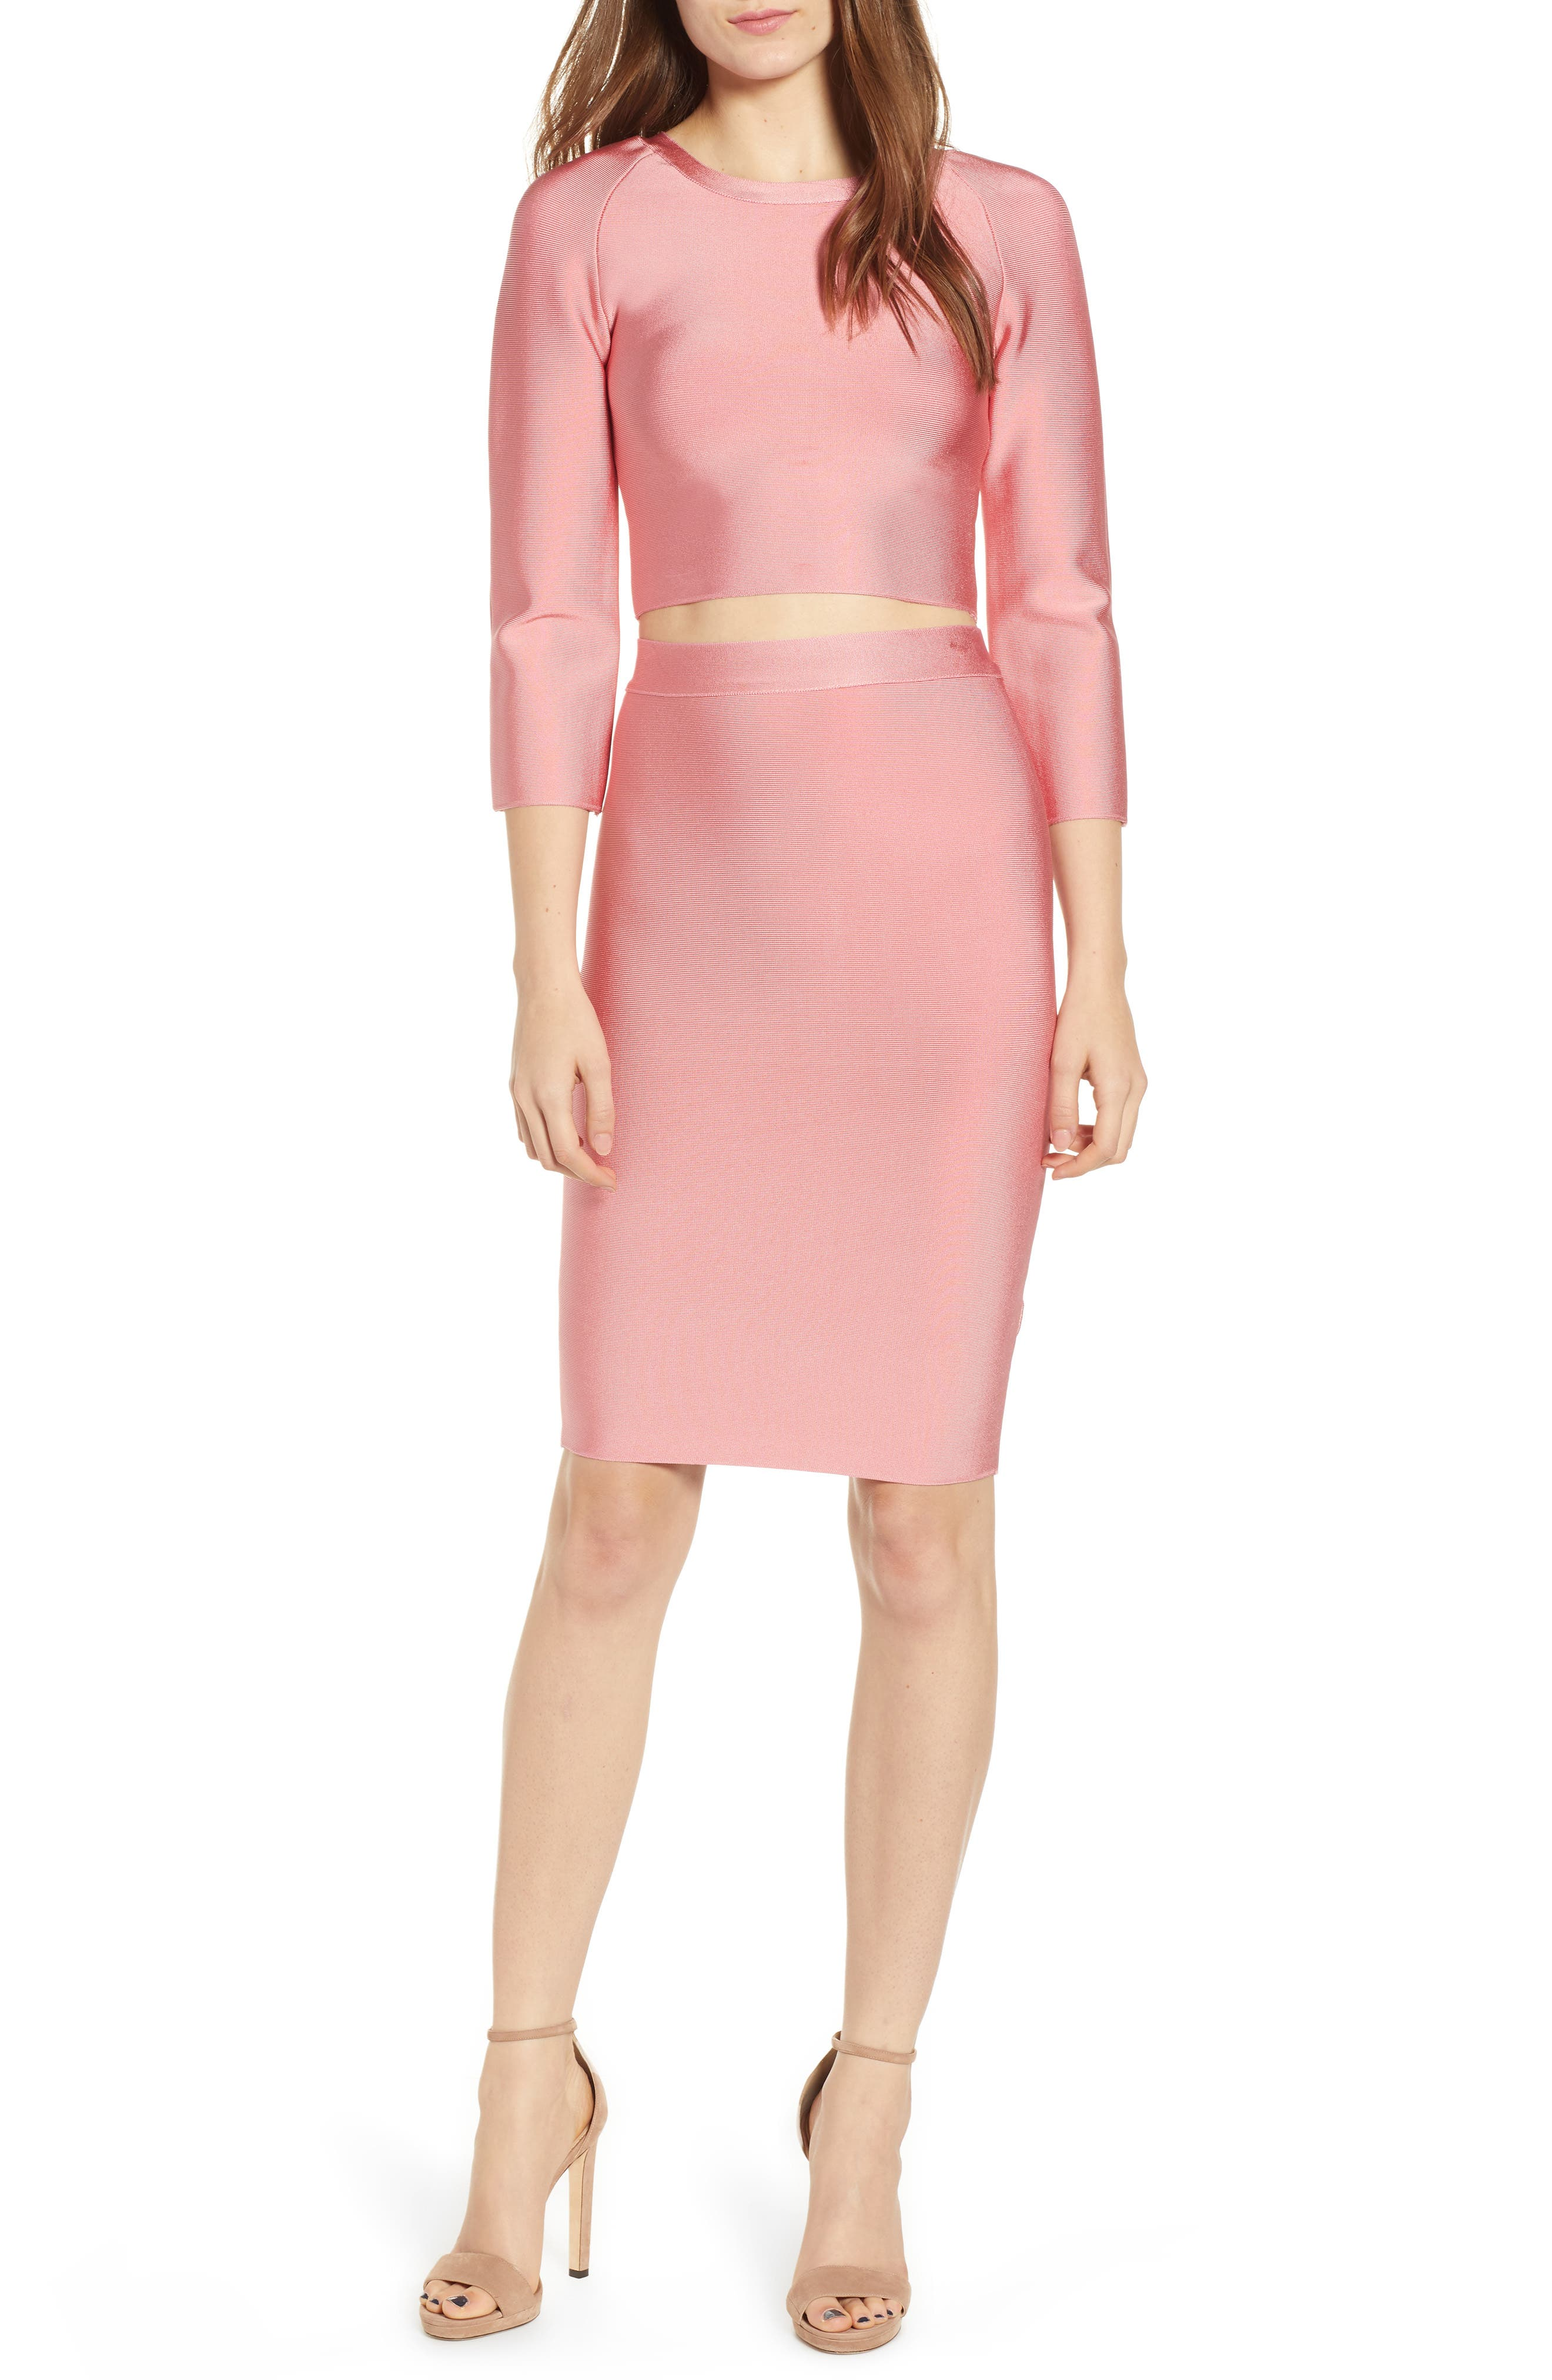 Sentimental Ny Two-Piece Body-Con Dress, Coral